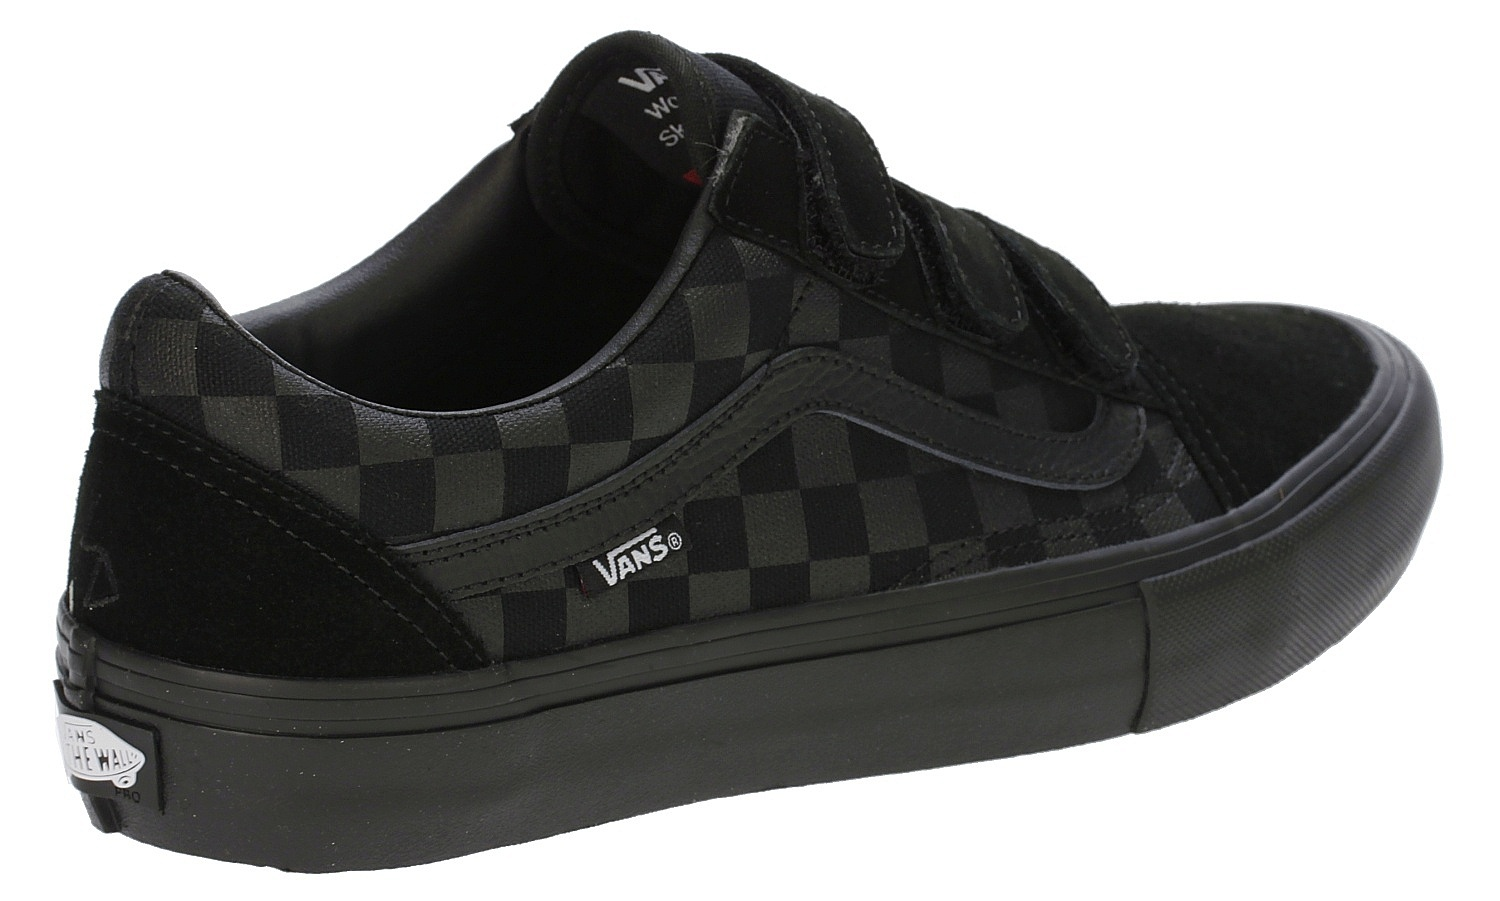 shoes Vans Old Skool V Pro - Rowan Zorilla Black - Snowboard shop ... 445649c8e